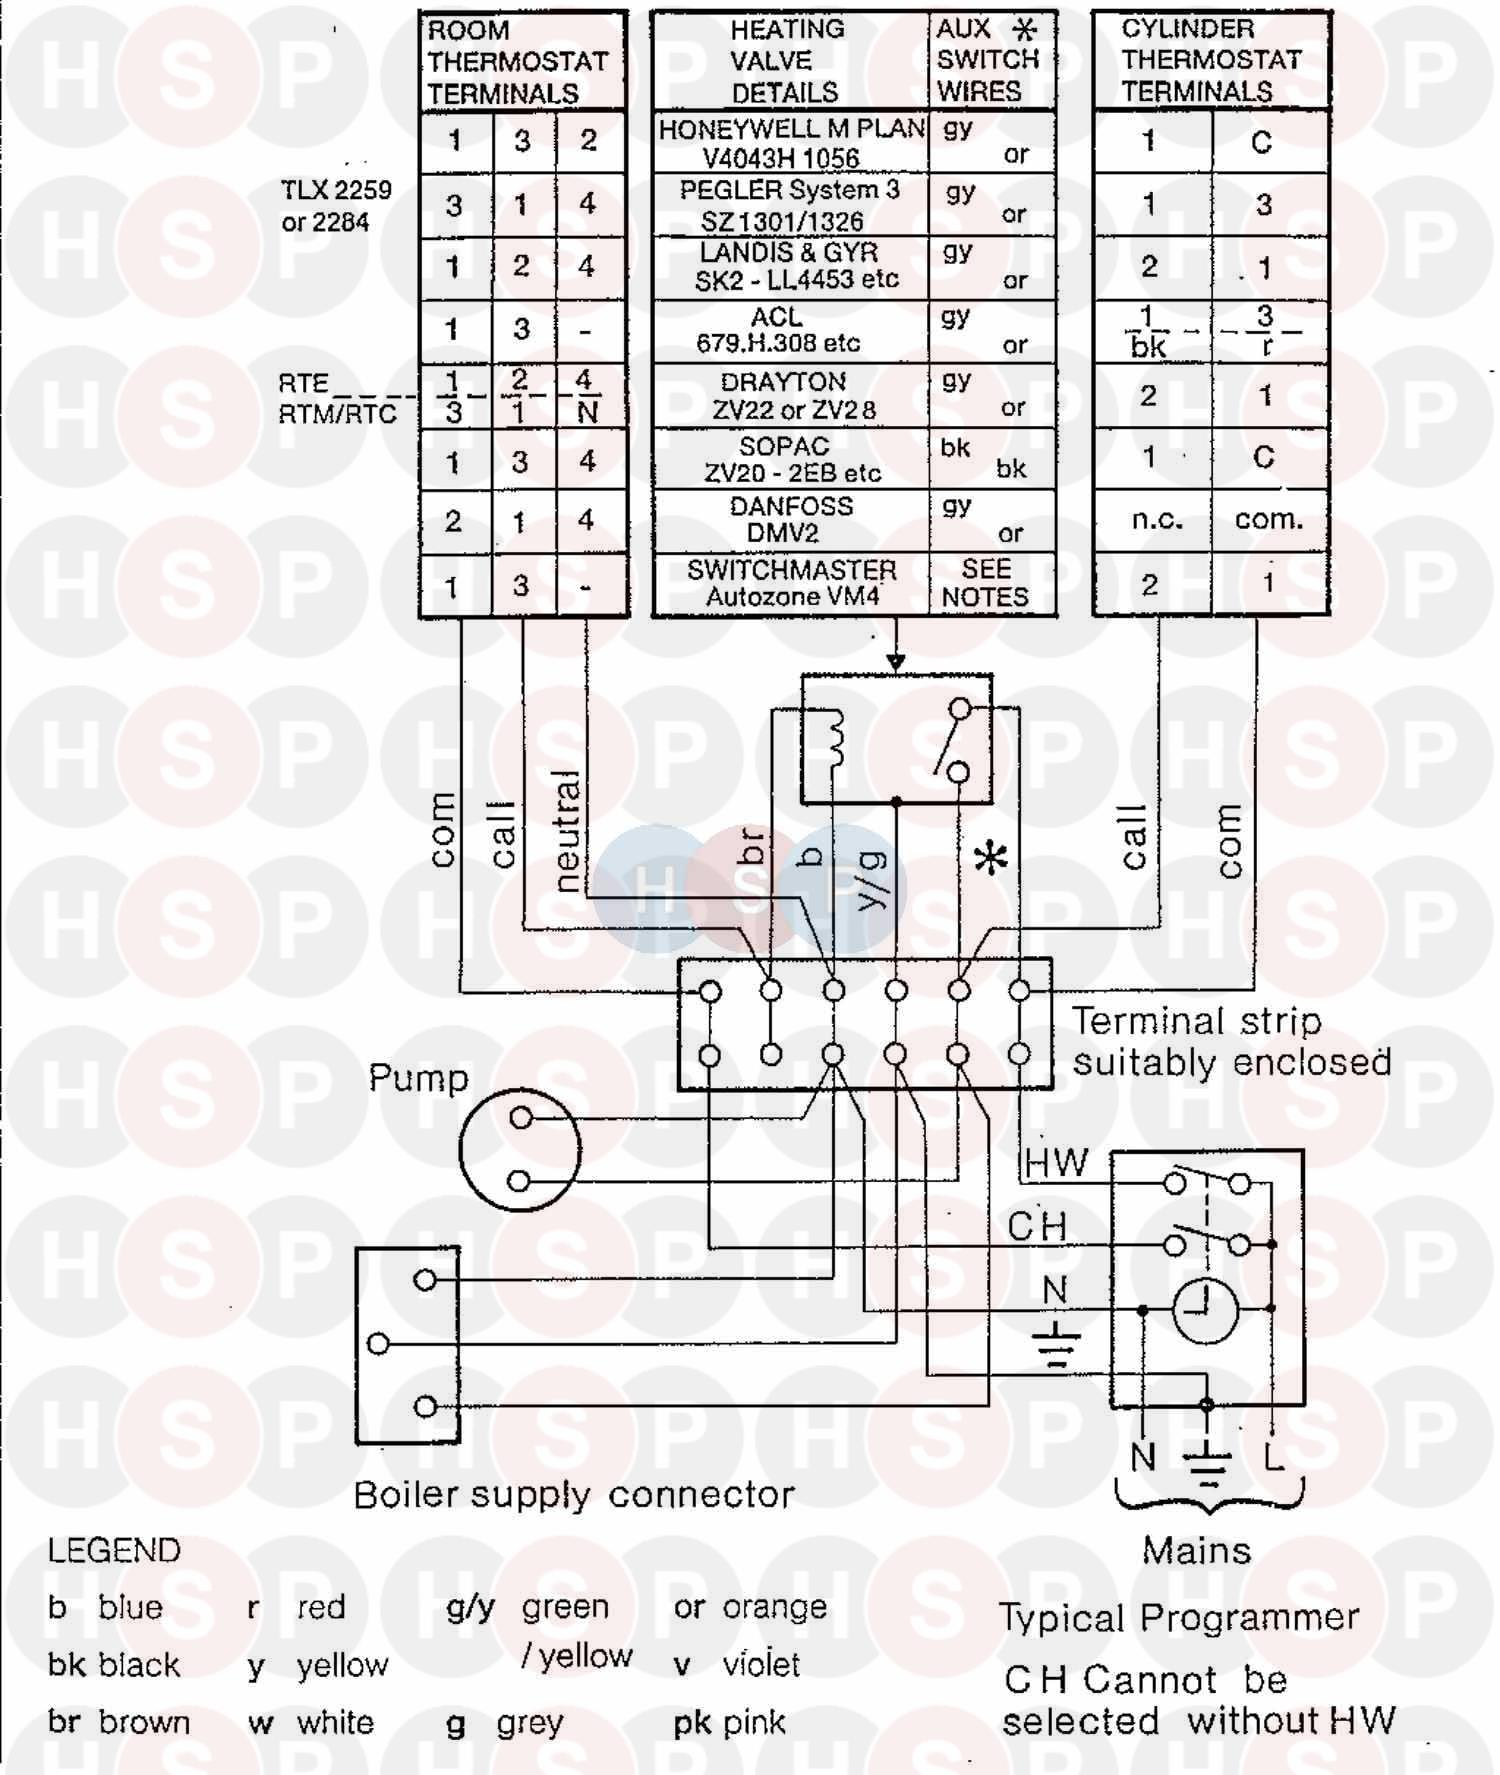 Ideal Elan 2 Nf 280 Wiring Diagram 3 Heating Spare Parts Click The To Open It On A New Page